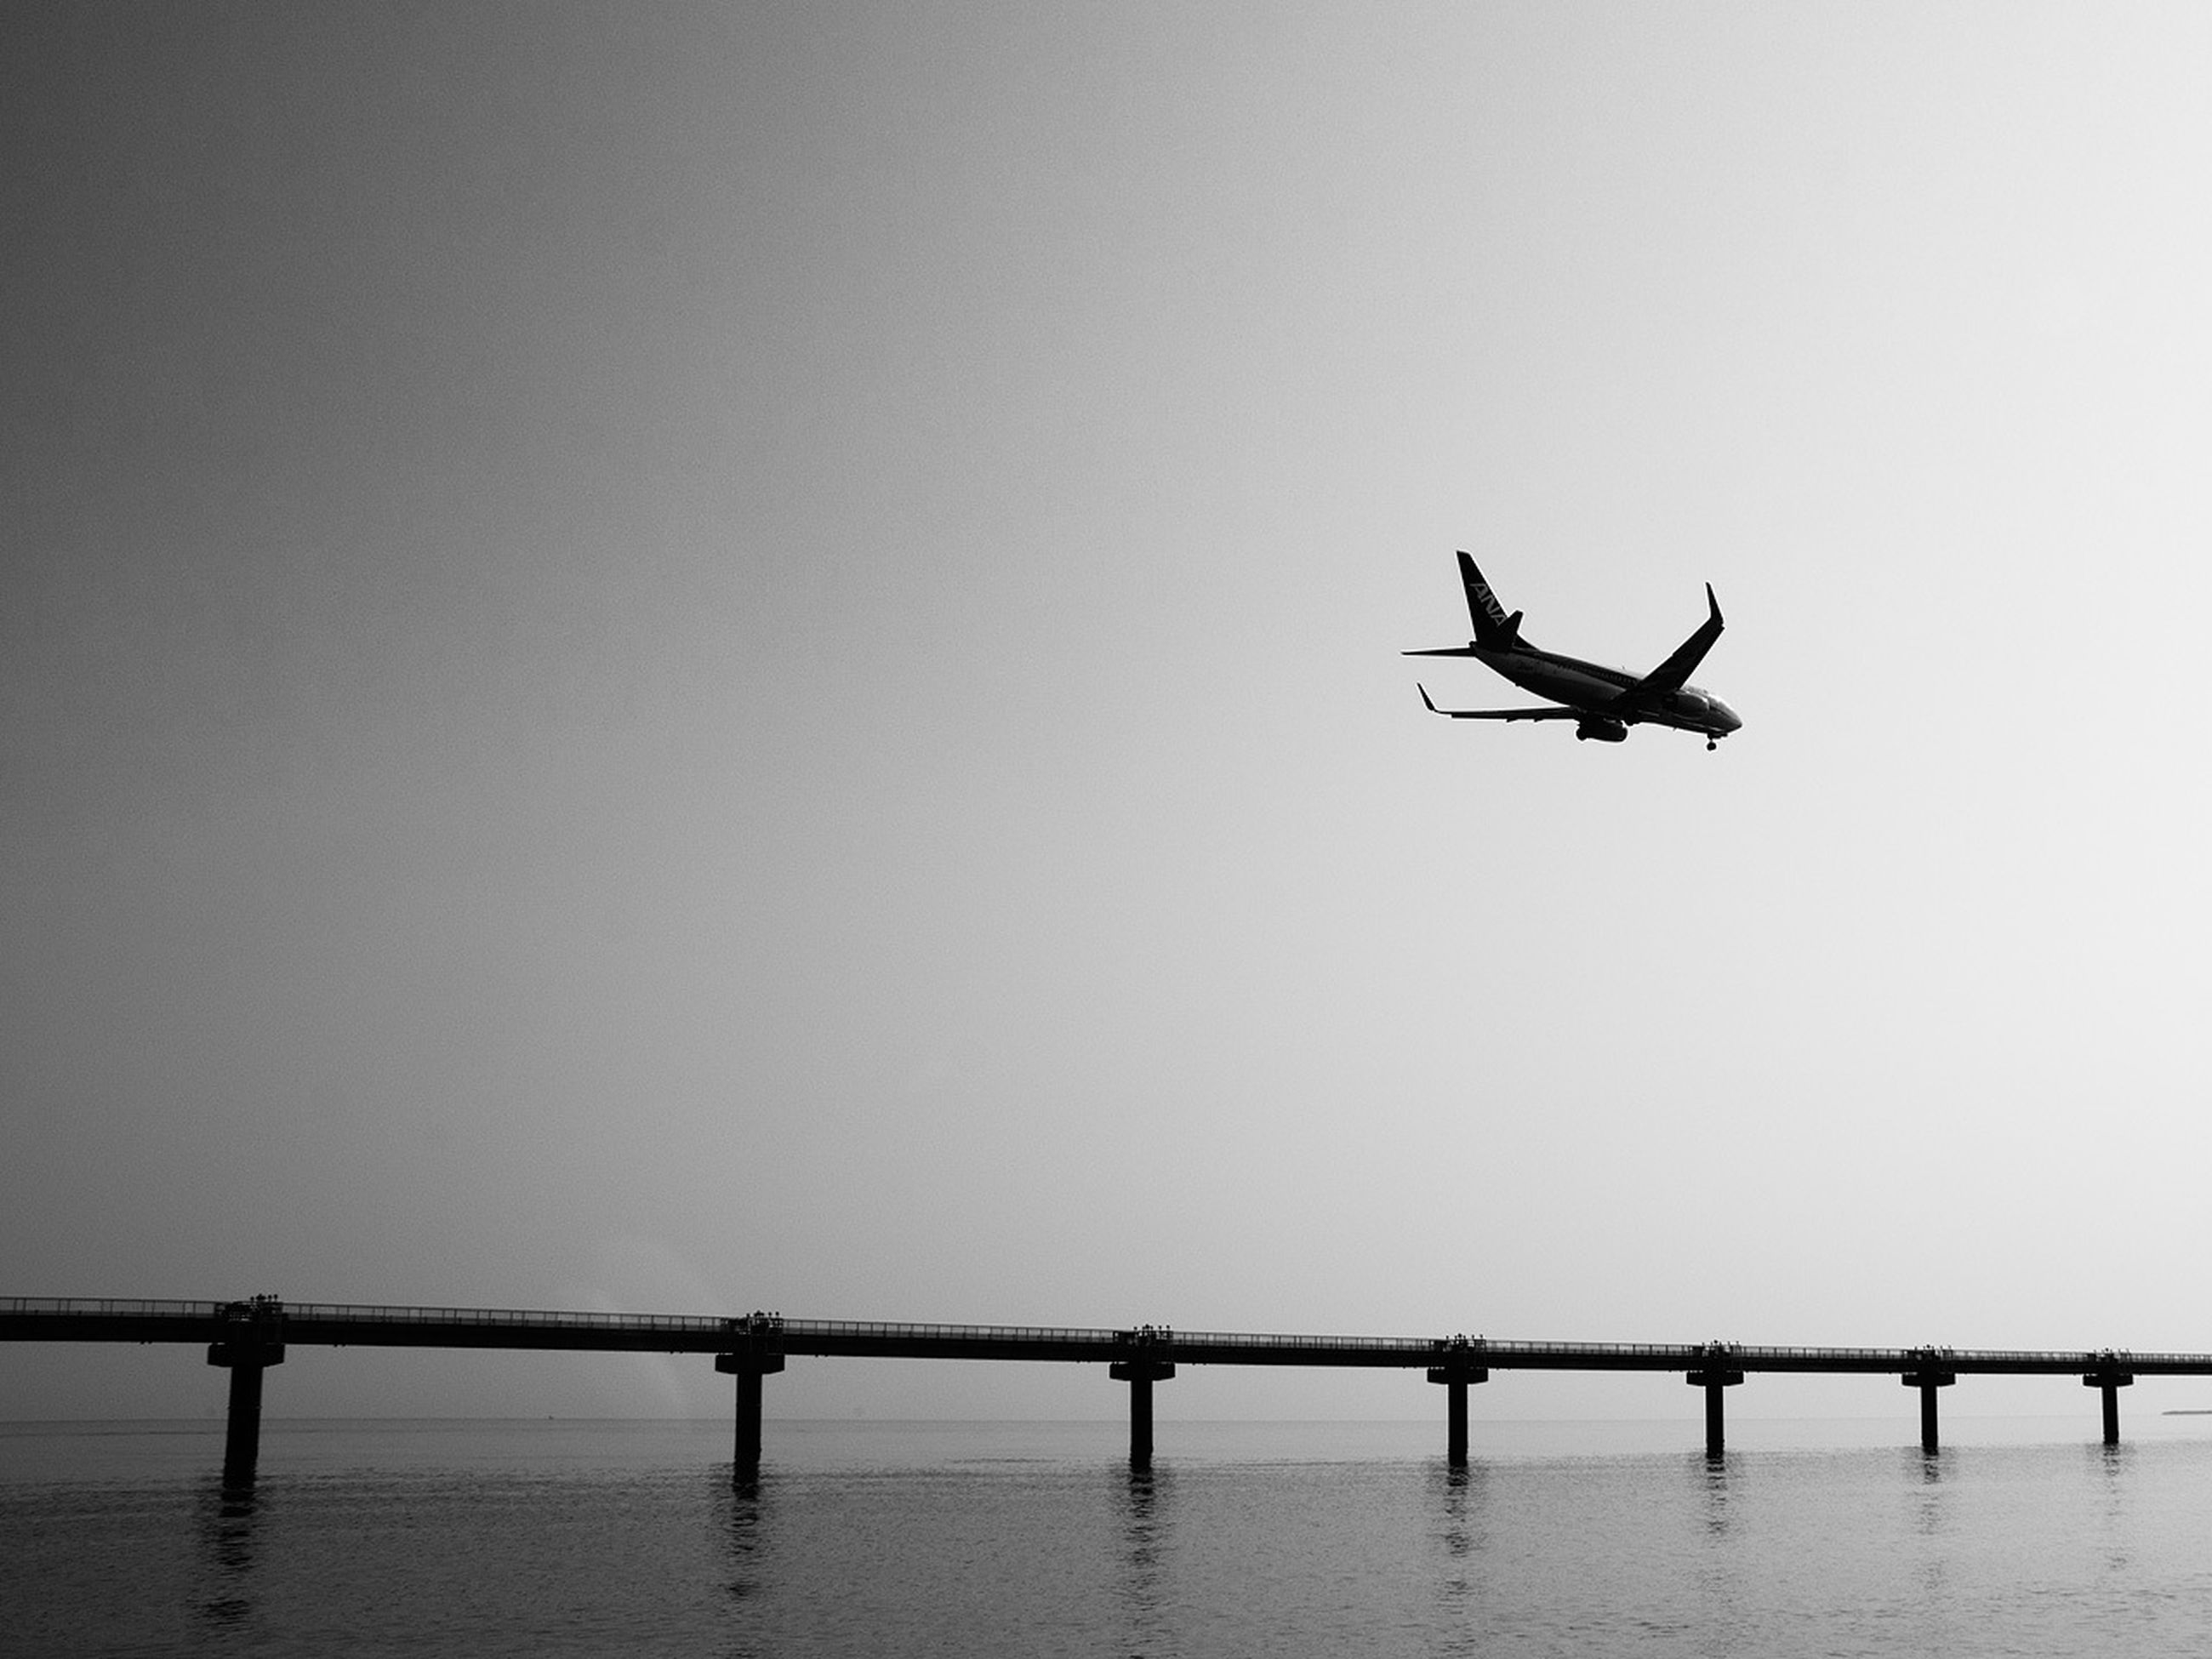 clear sky, bird, copy space, flying, animal themes, silhouette, wildlife, mid-air, water, connection, animals in the wild, transportation, spread wings, waterfront, low angle view, full length, bridge - man made structure, one animal, built structure, outdoors